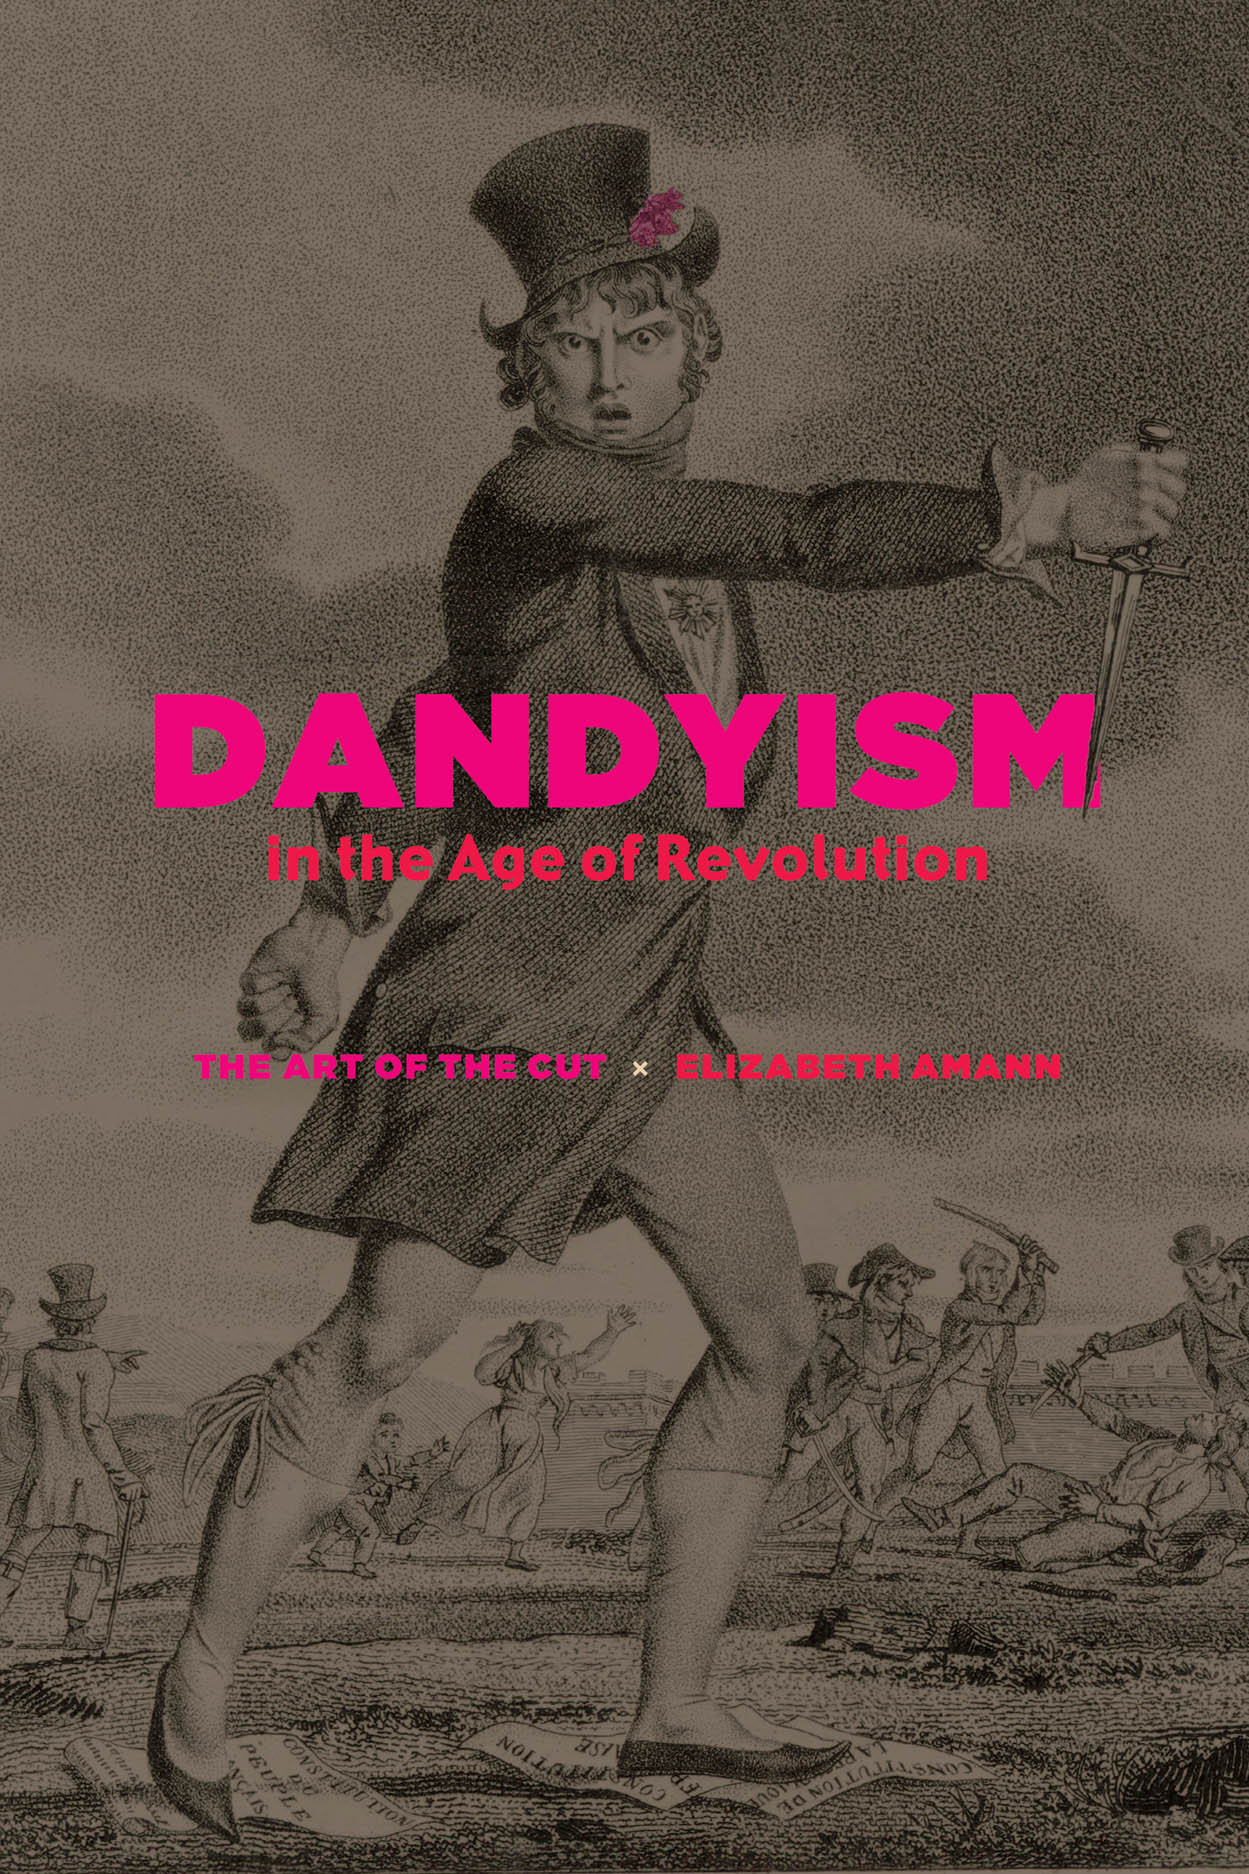 Dandyism in the Age of Revolution: The Art of the Cut